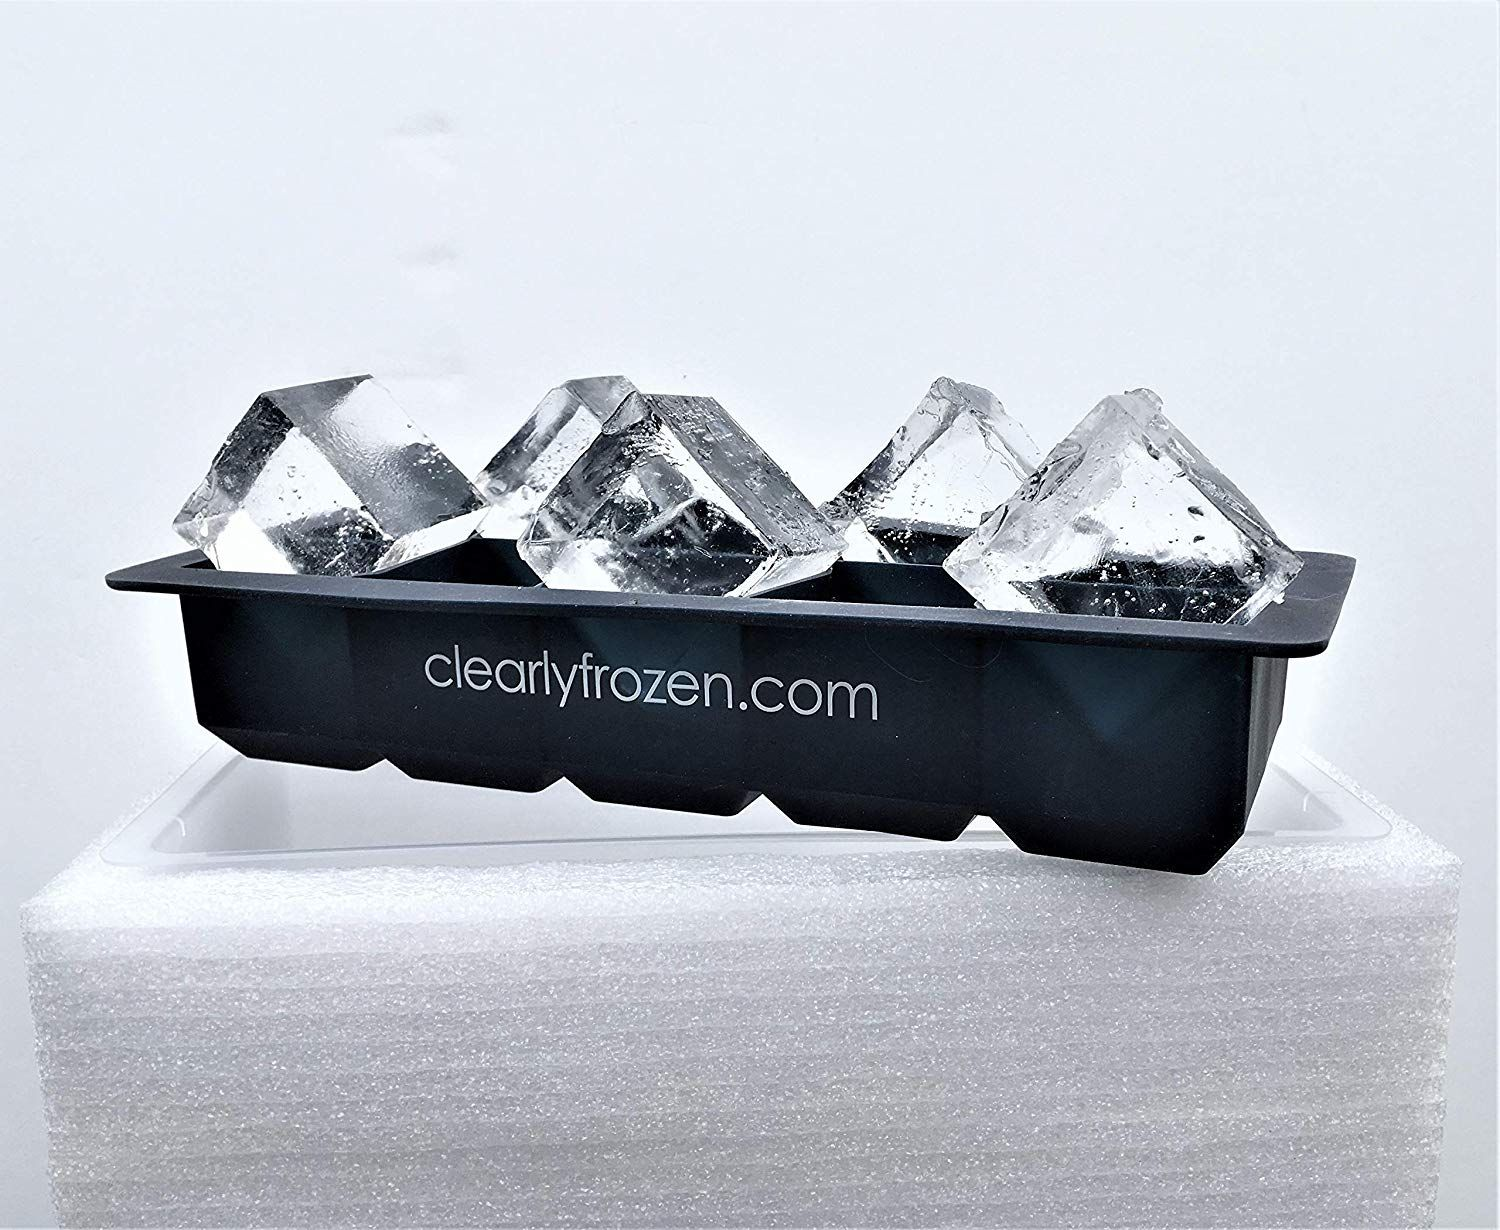 ClearlyFrozen High Capacity Home Clear Ice Cube Tray/Ice Cube Maker